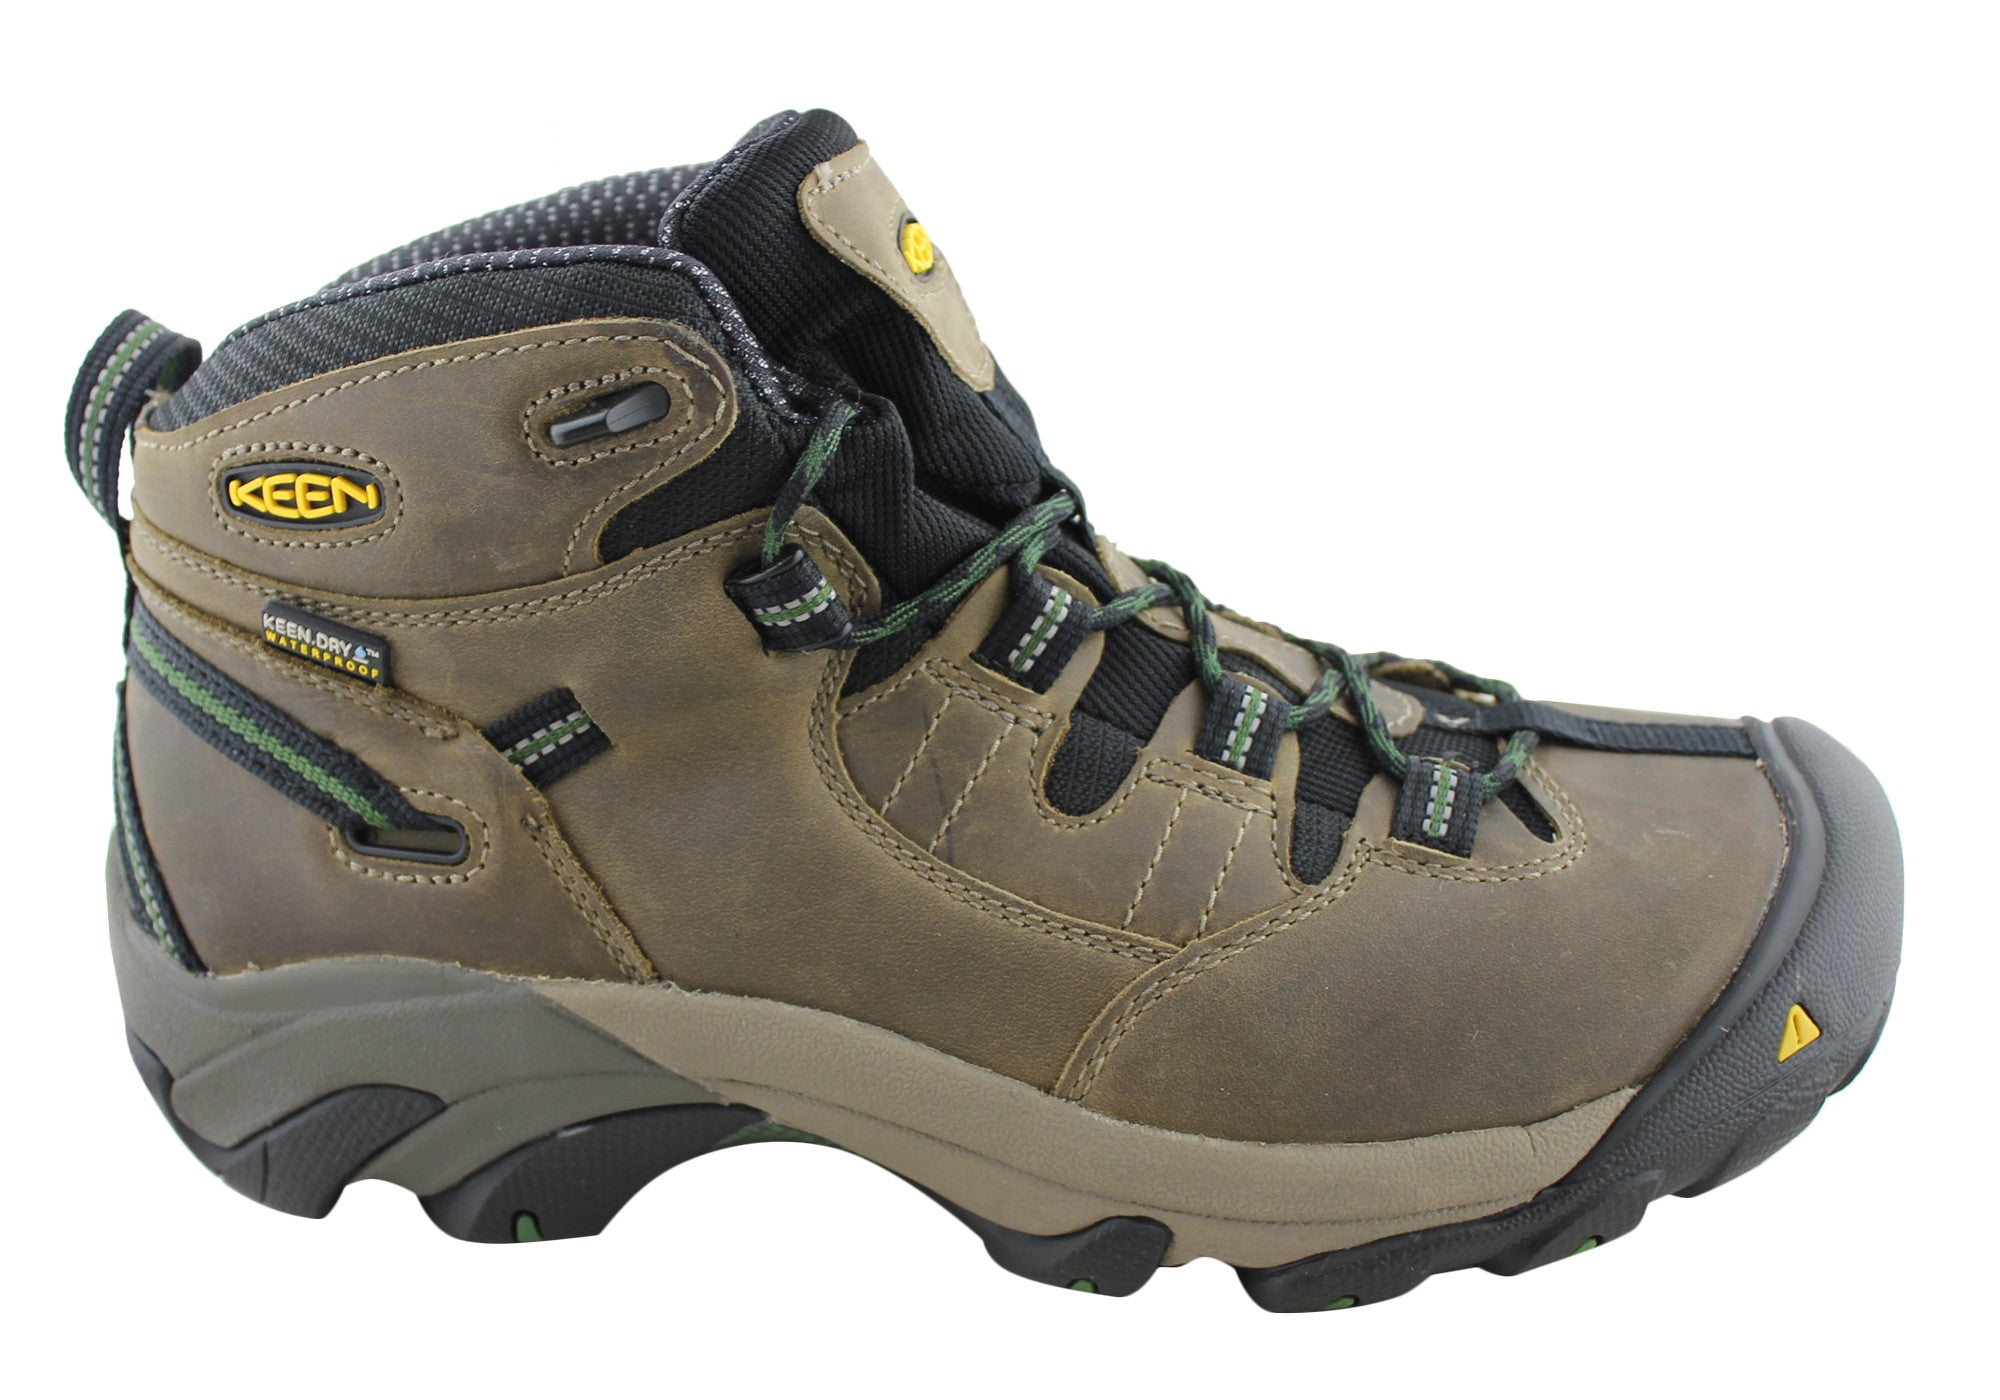 Scarpe casual da Mid uomo  New Keen Detroit Mid da uomos Steel Toe Lace Up Wide Fit Boots 571d81